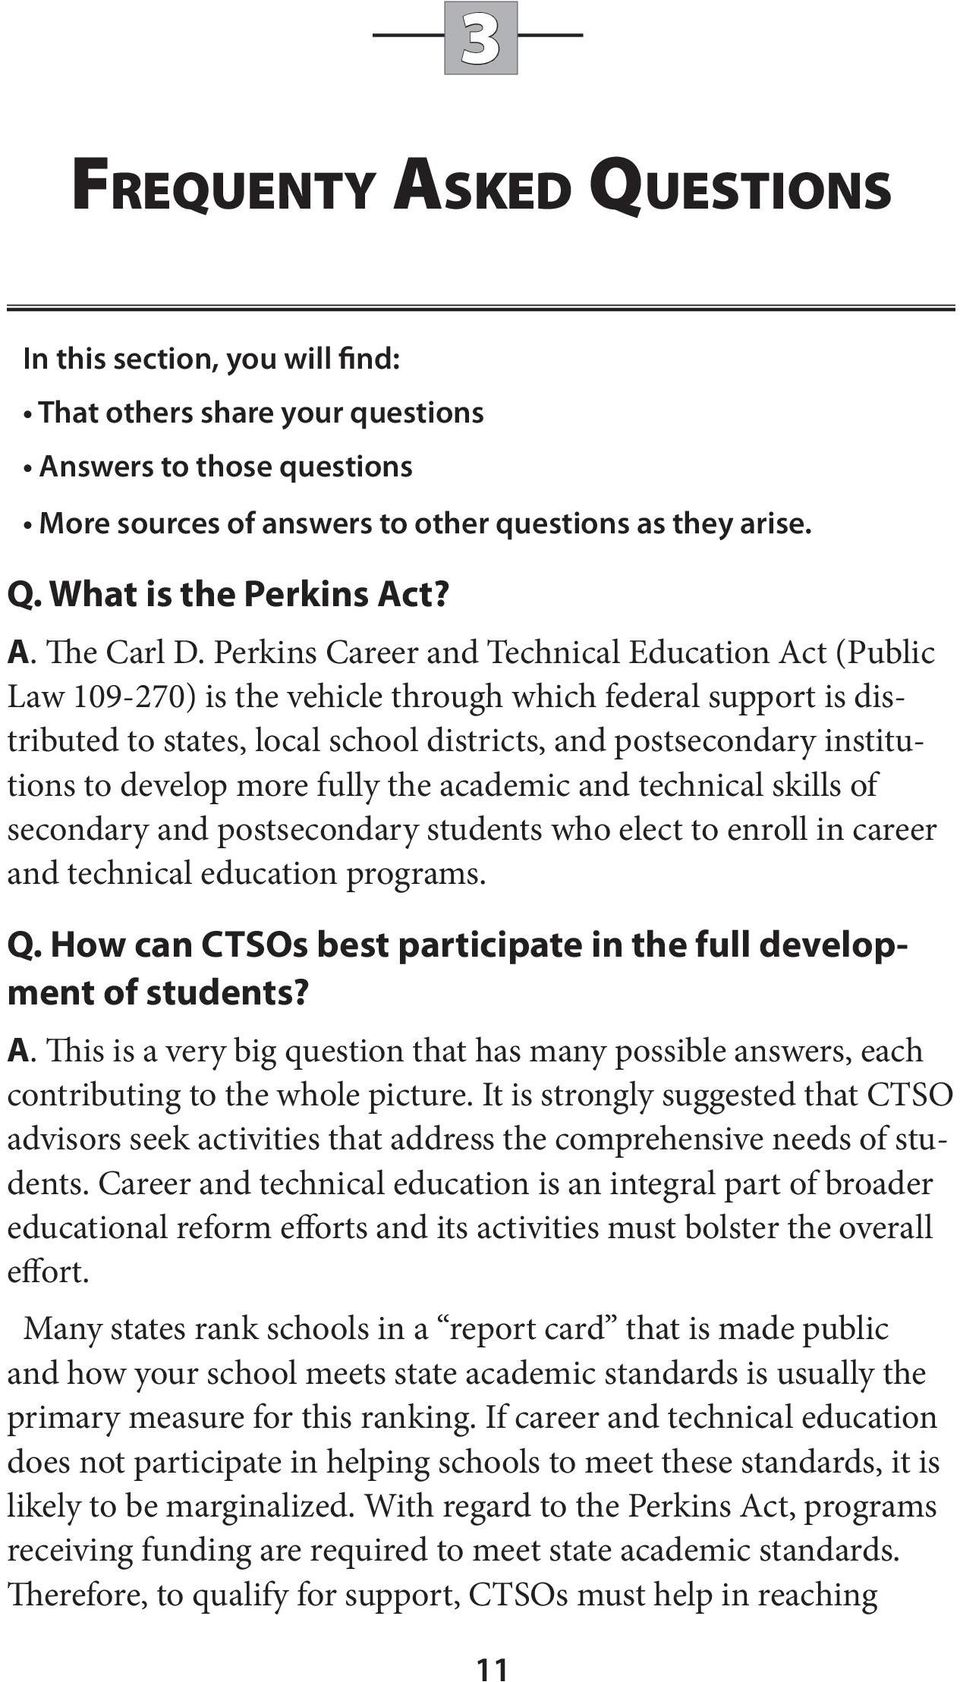 Perkins Career and Technical Education Act (Public Law 109-270) is the vehicle through which federal support is distributed to states, local school districts, and postsecondary institutions to